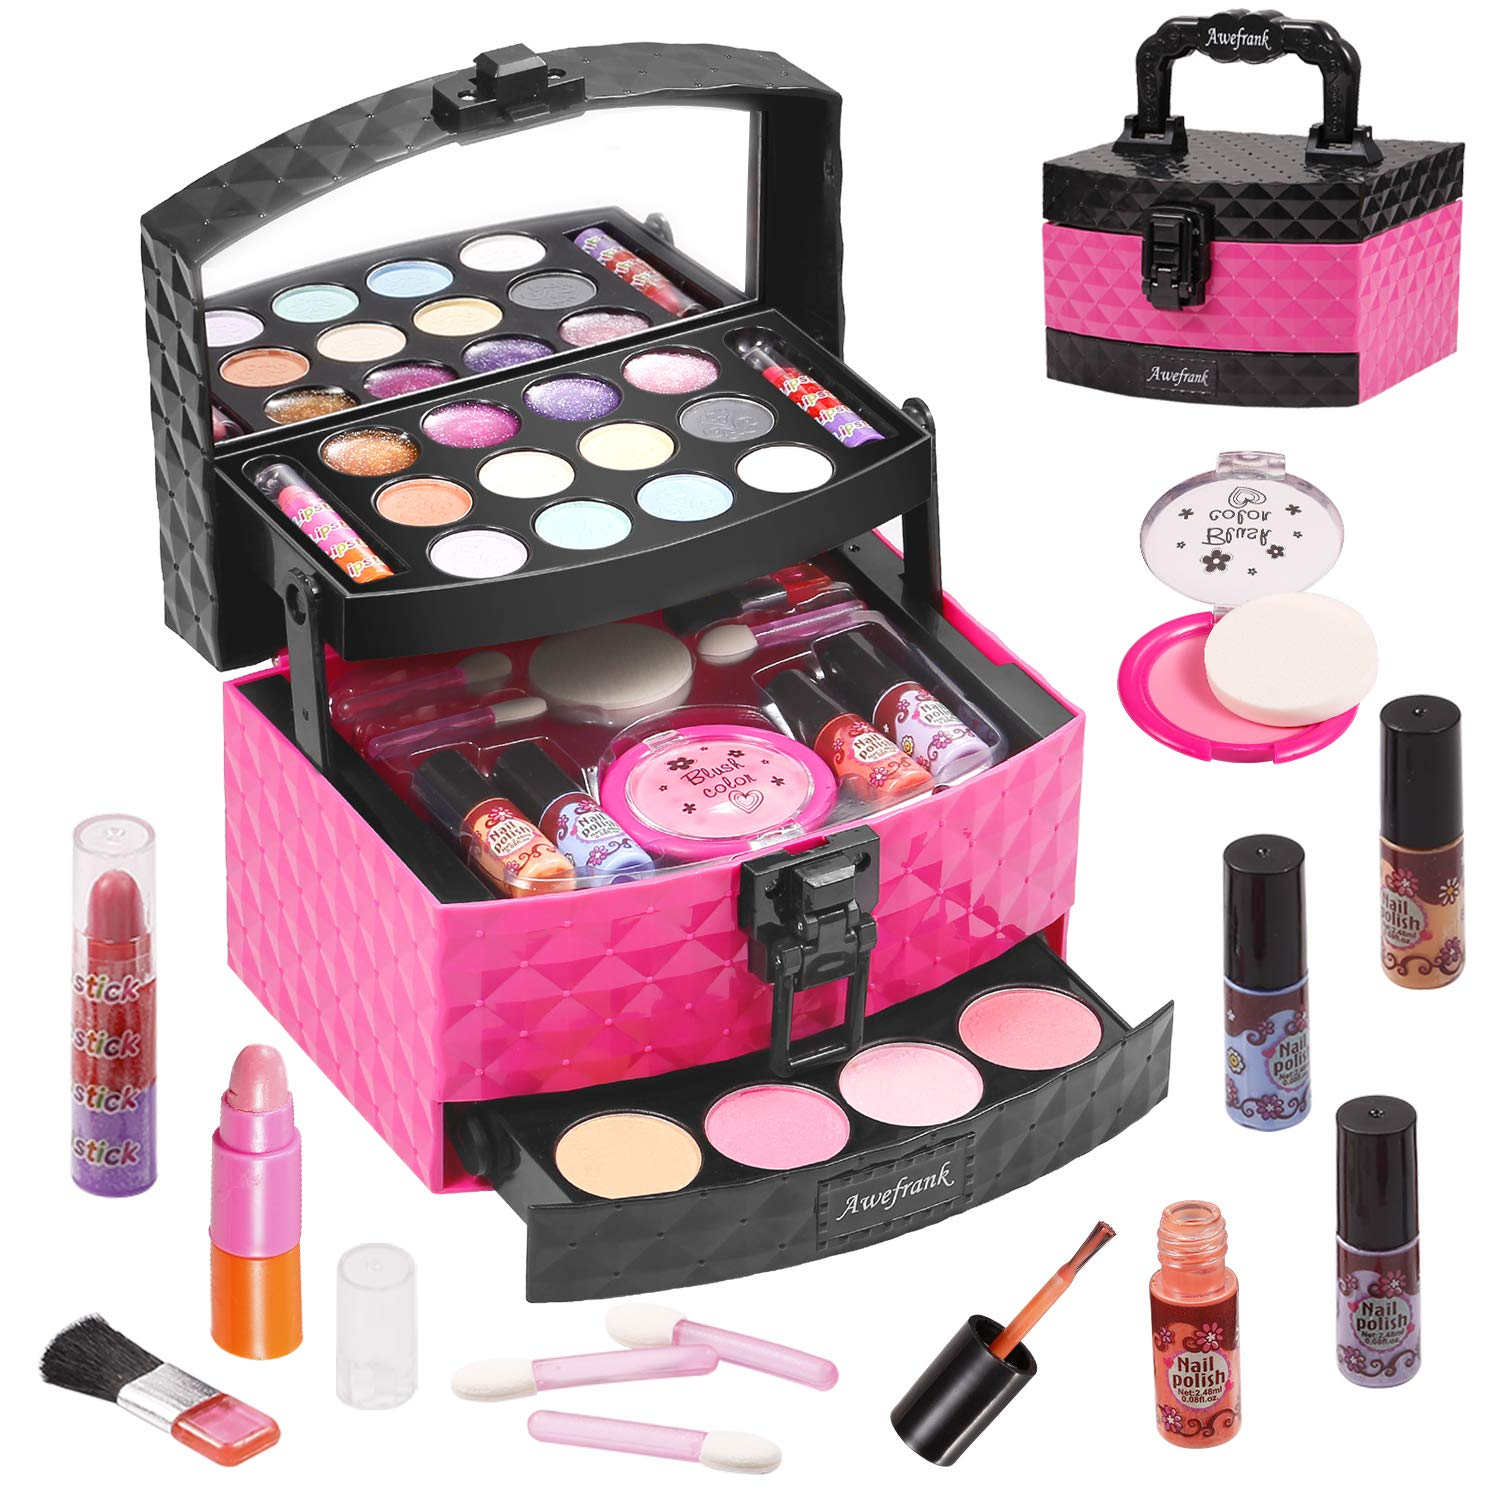 Awefrank 29 PCS Kids Makeup Kit for Girls, Washable Cosmetics Makeup Toy Set with Portable Makeup Box, Real Beauty Toy Set for Kids, Girl Pretend Play